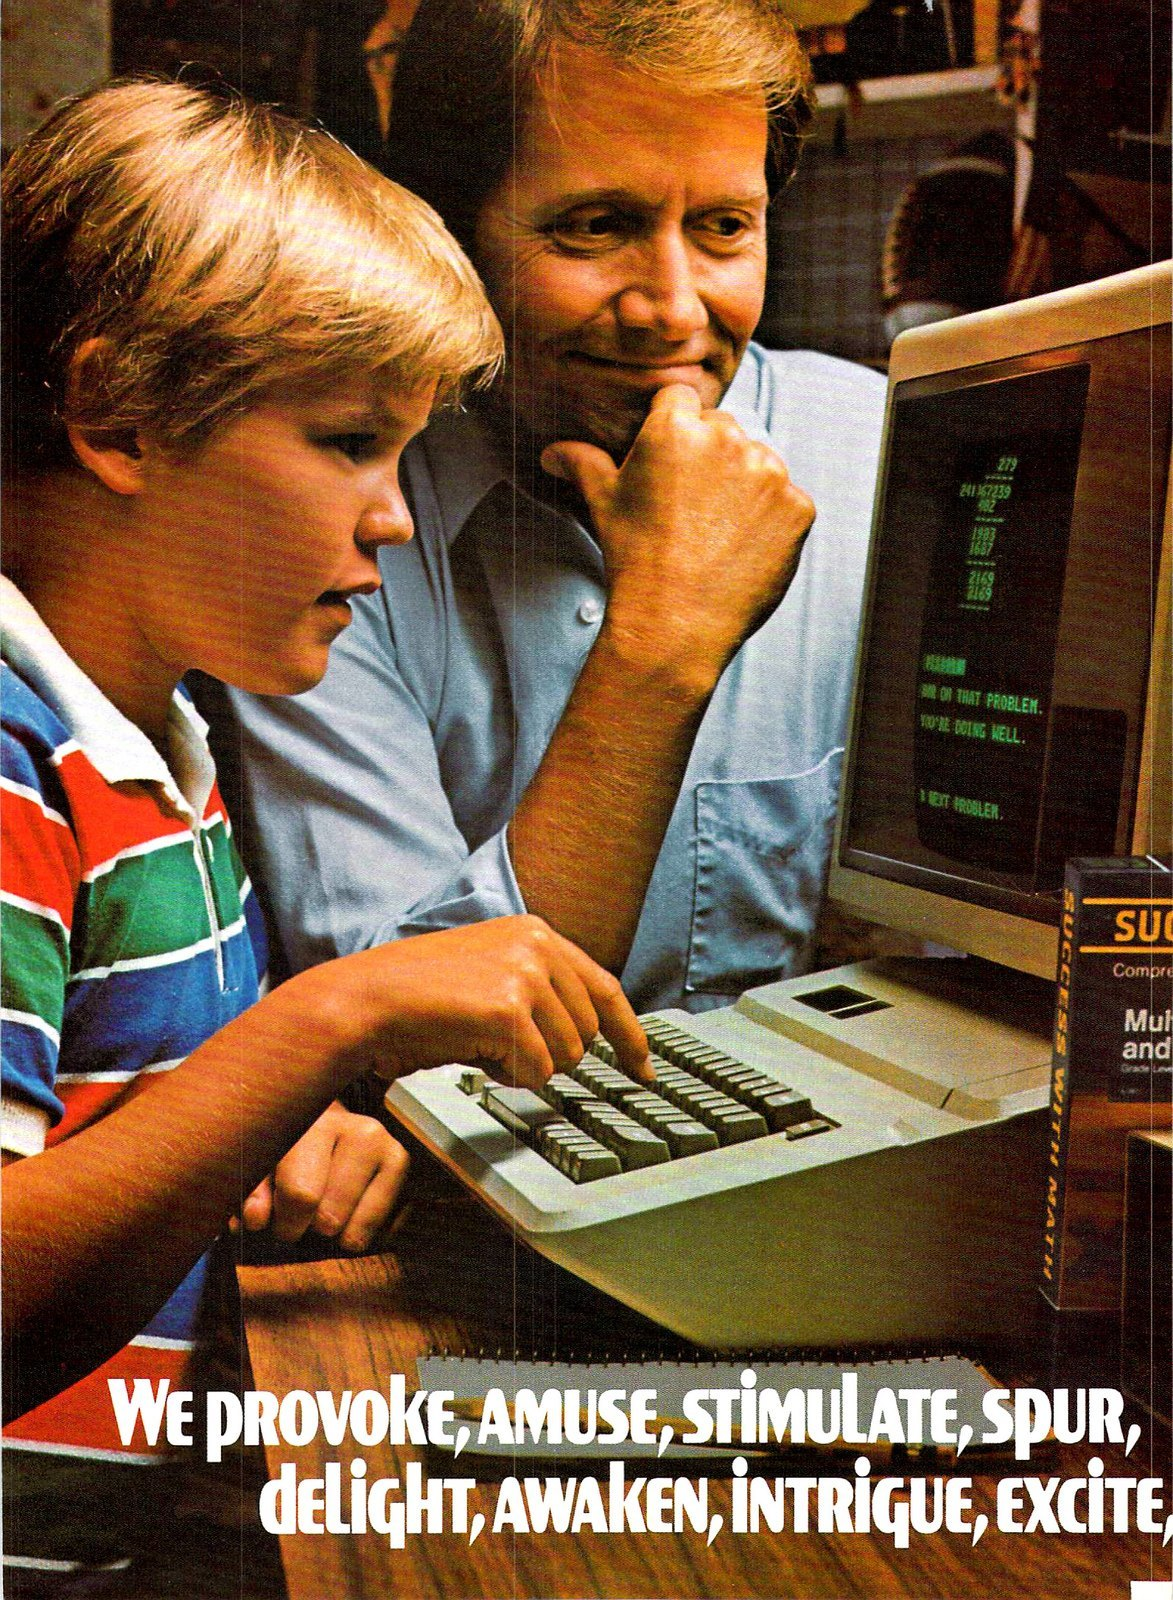 1980s Home Computers Will Make Our Dumb Kids Smart